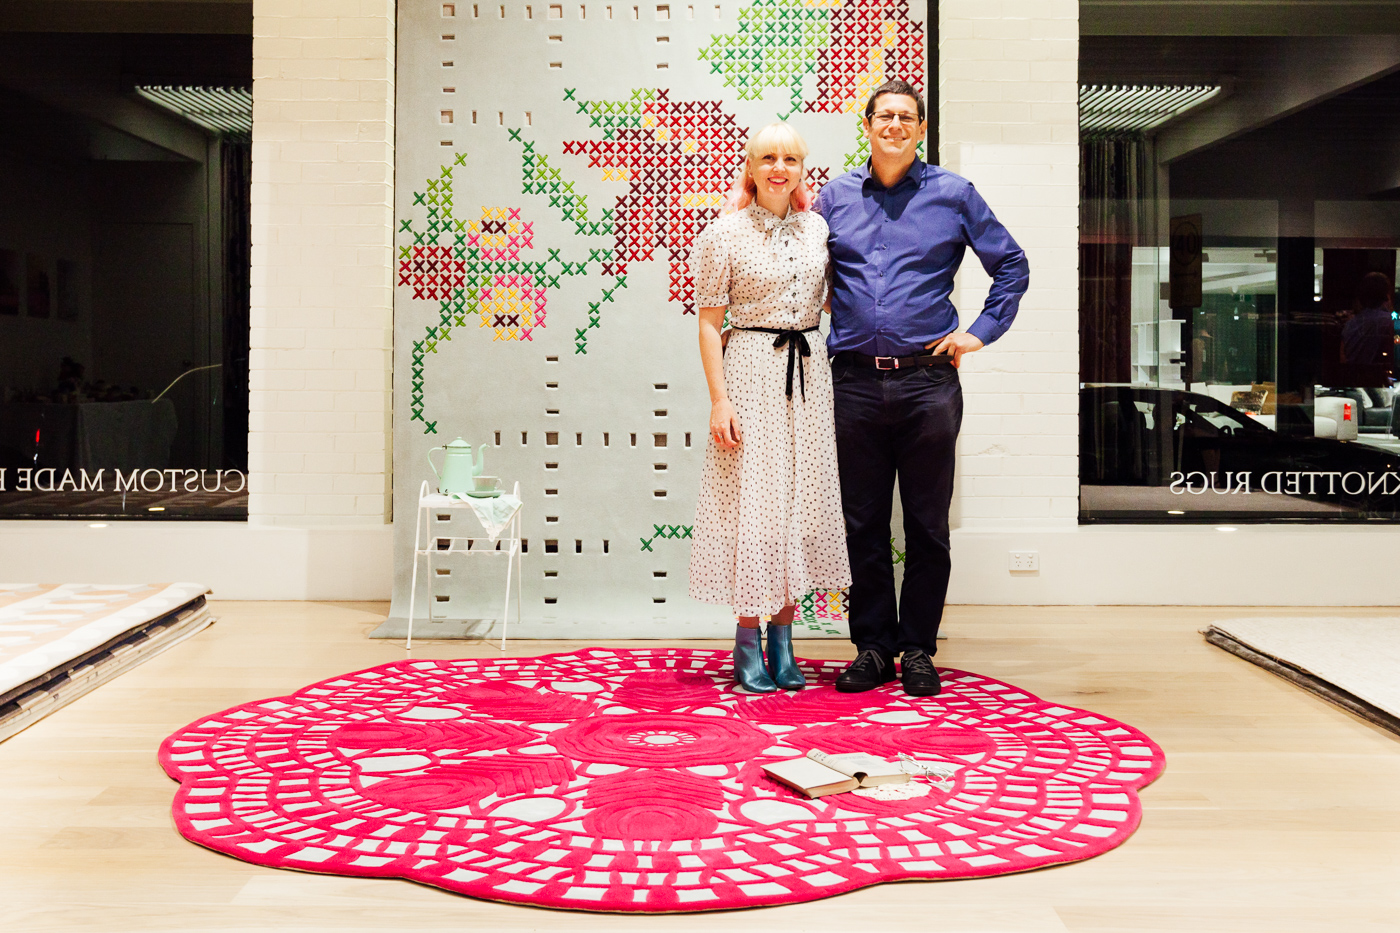 Petrina Turner and Yosi Tal of Designer Rugs | NEW AGAIN by Petrina Turner Design for Designer Rugs | The launch event